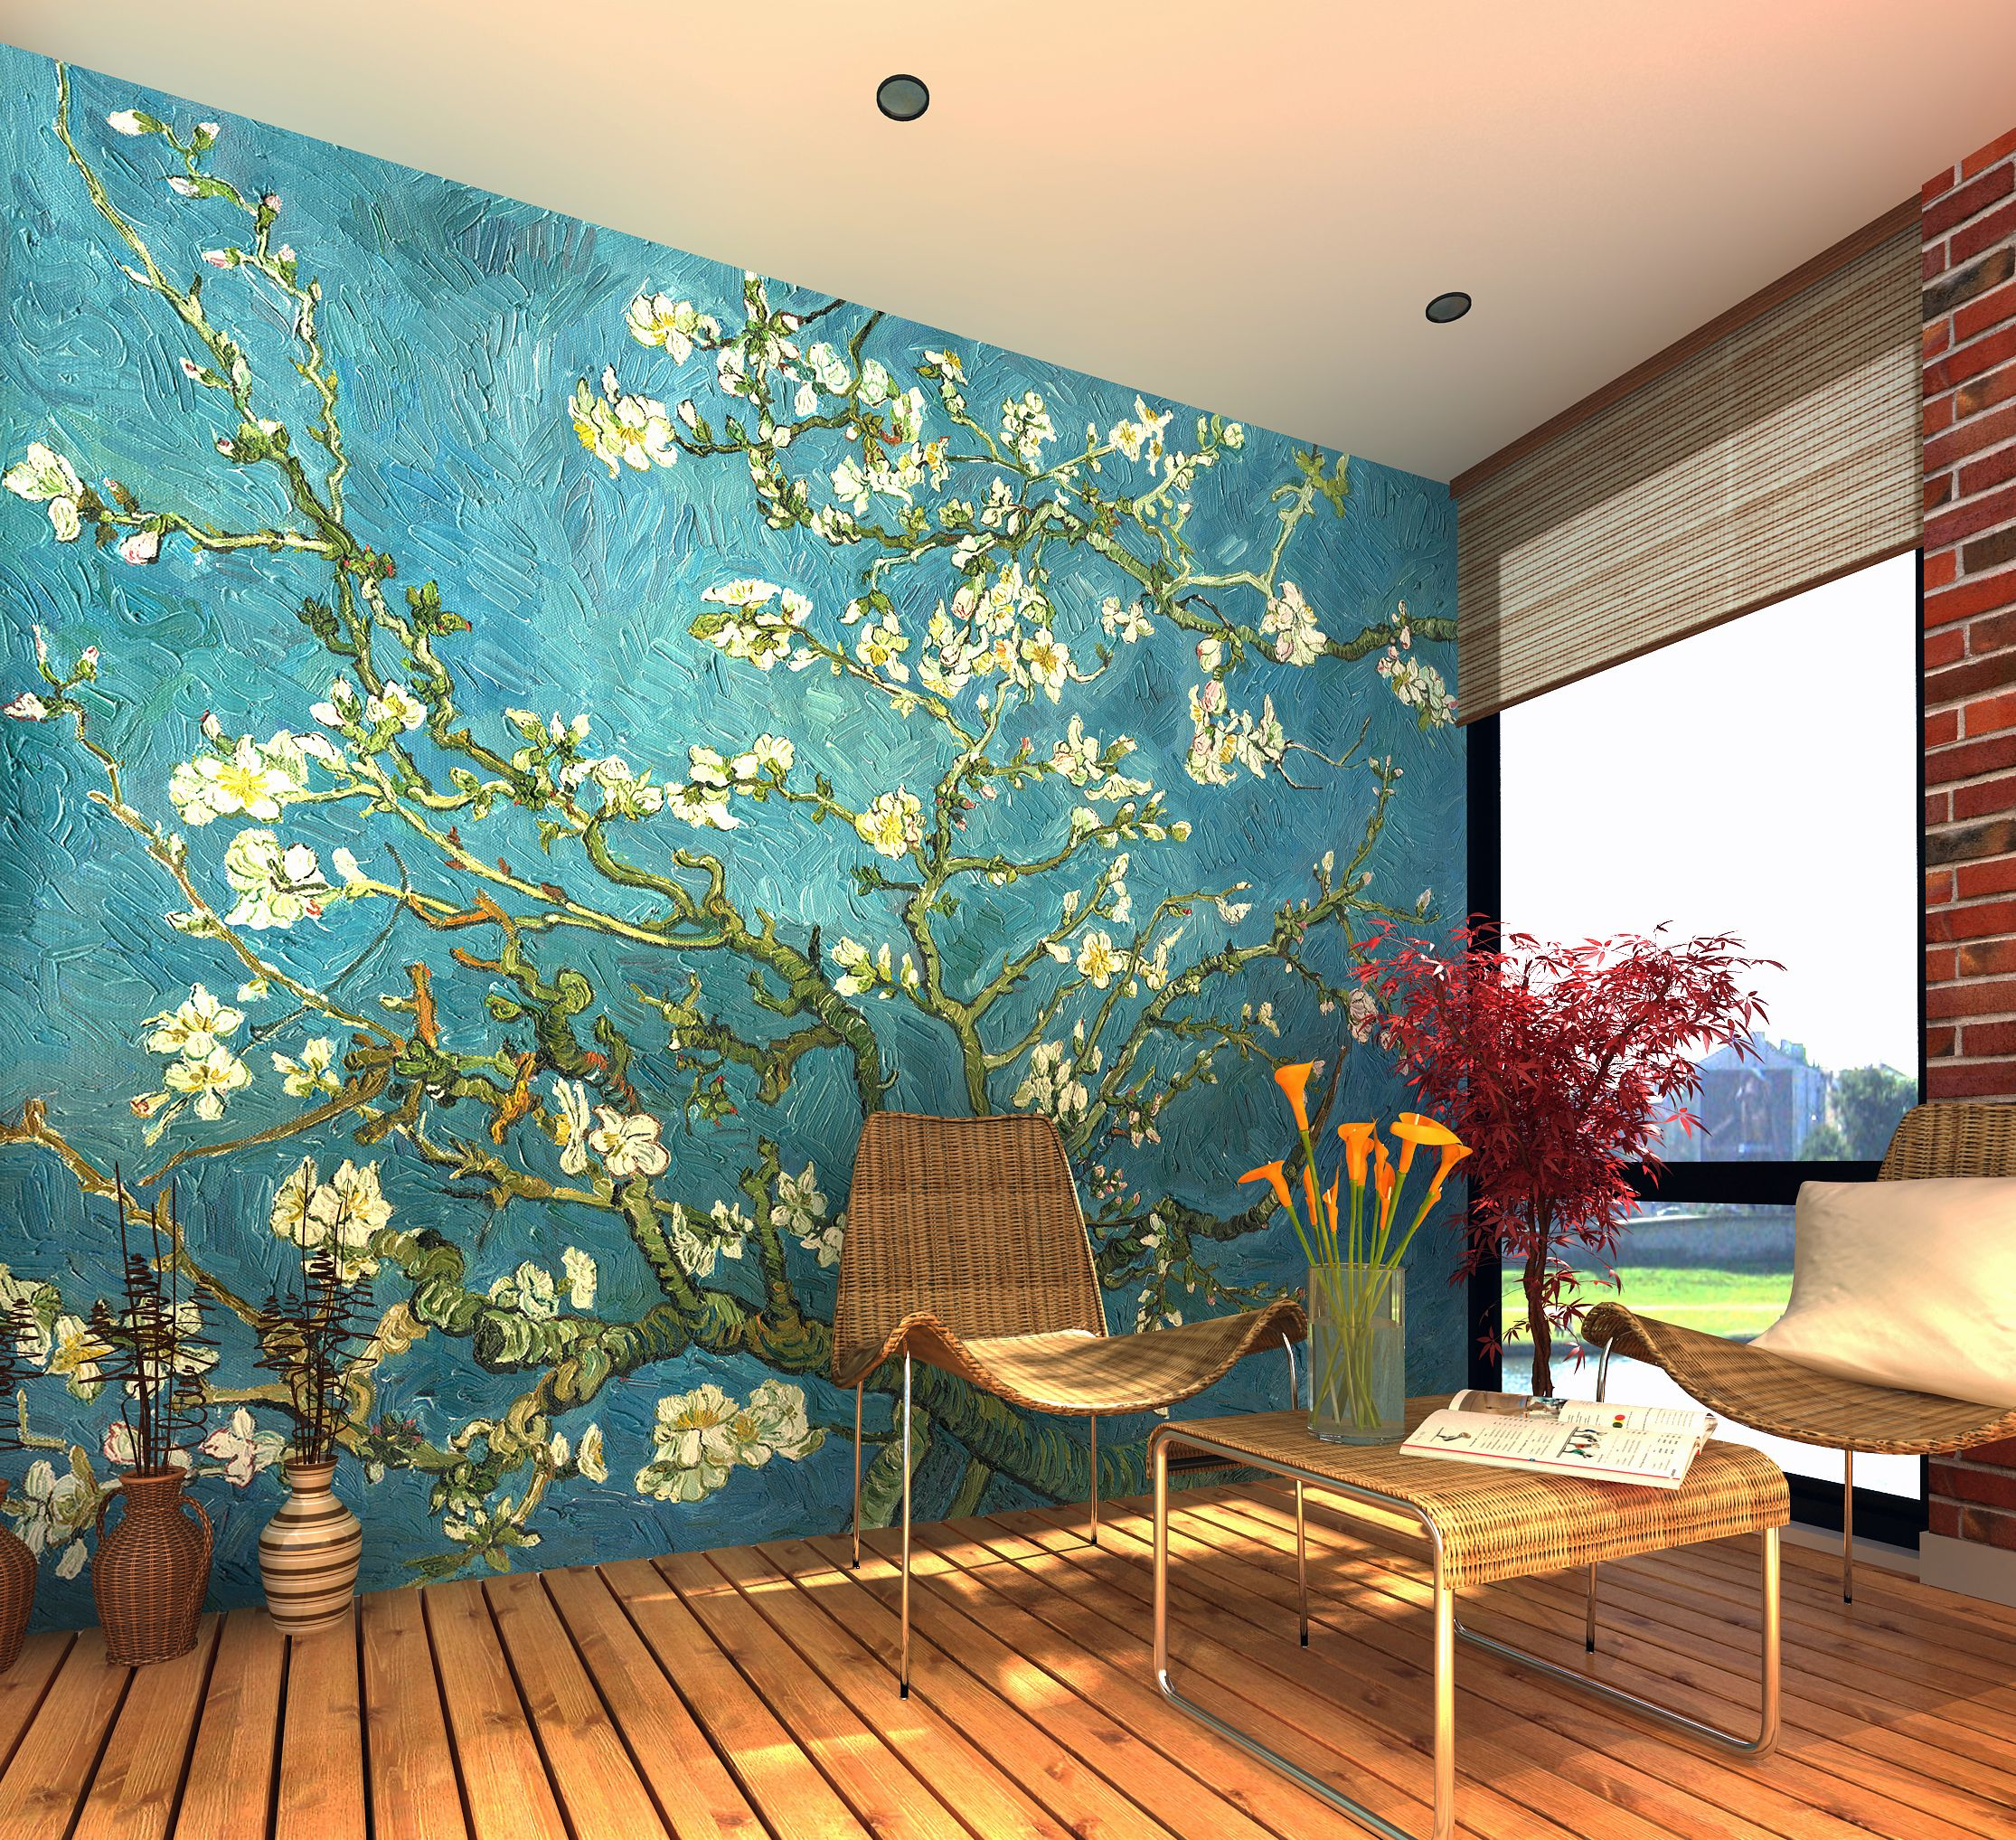 Van gogh almond blossom wall mural wallpaper for Wall art wallpaper